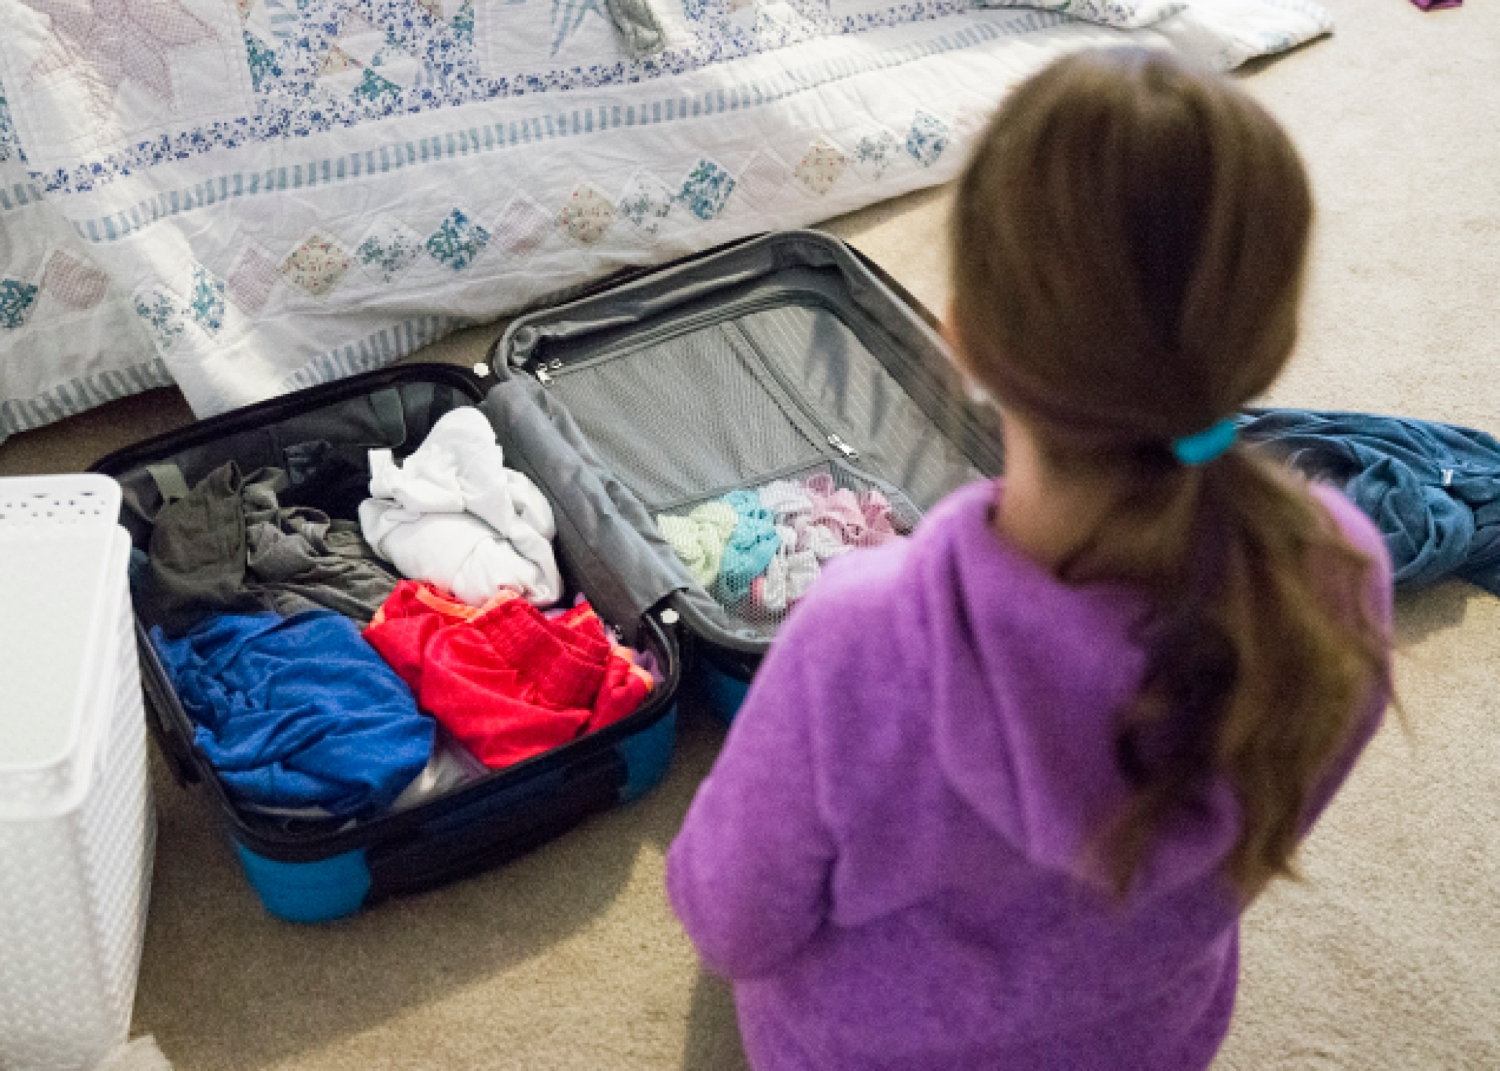 These roomy, yet lightweight hard case rolling suitcases are the best for kids because they have several zippered compartments for their underwear and socks, etc.  This was the first trip both of my kids packed themselves and it went so well.  (I gave them a list of what to pack).  #amazonbasics #kidssuitcase